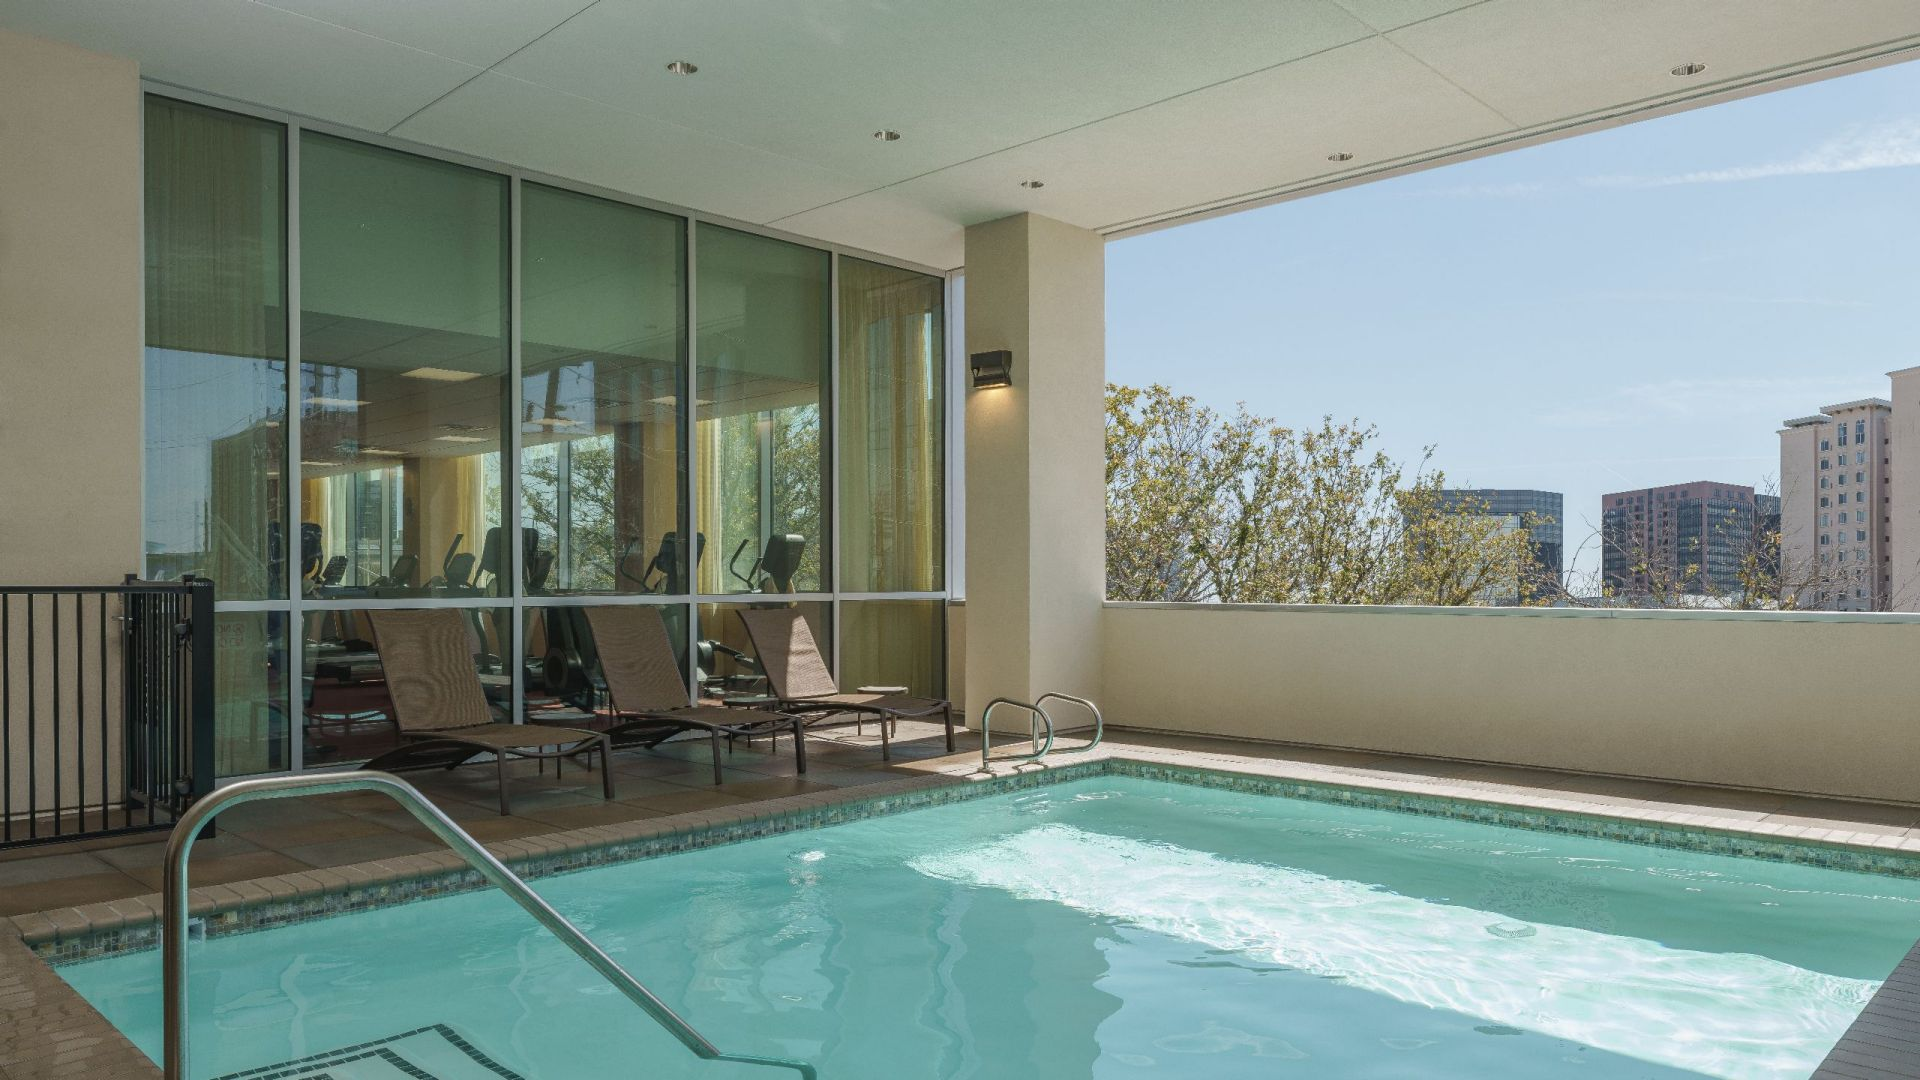 Hyatt Place Houston Galleria Pool